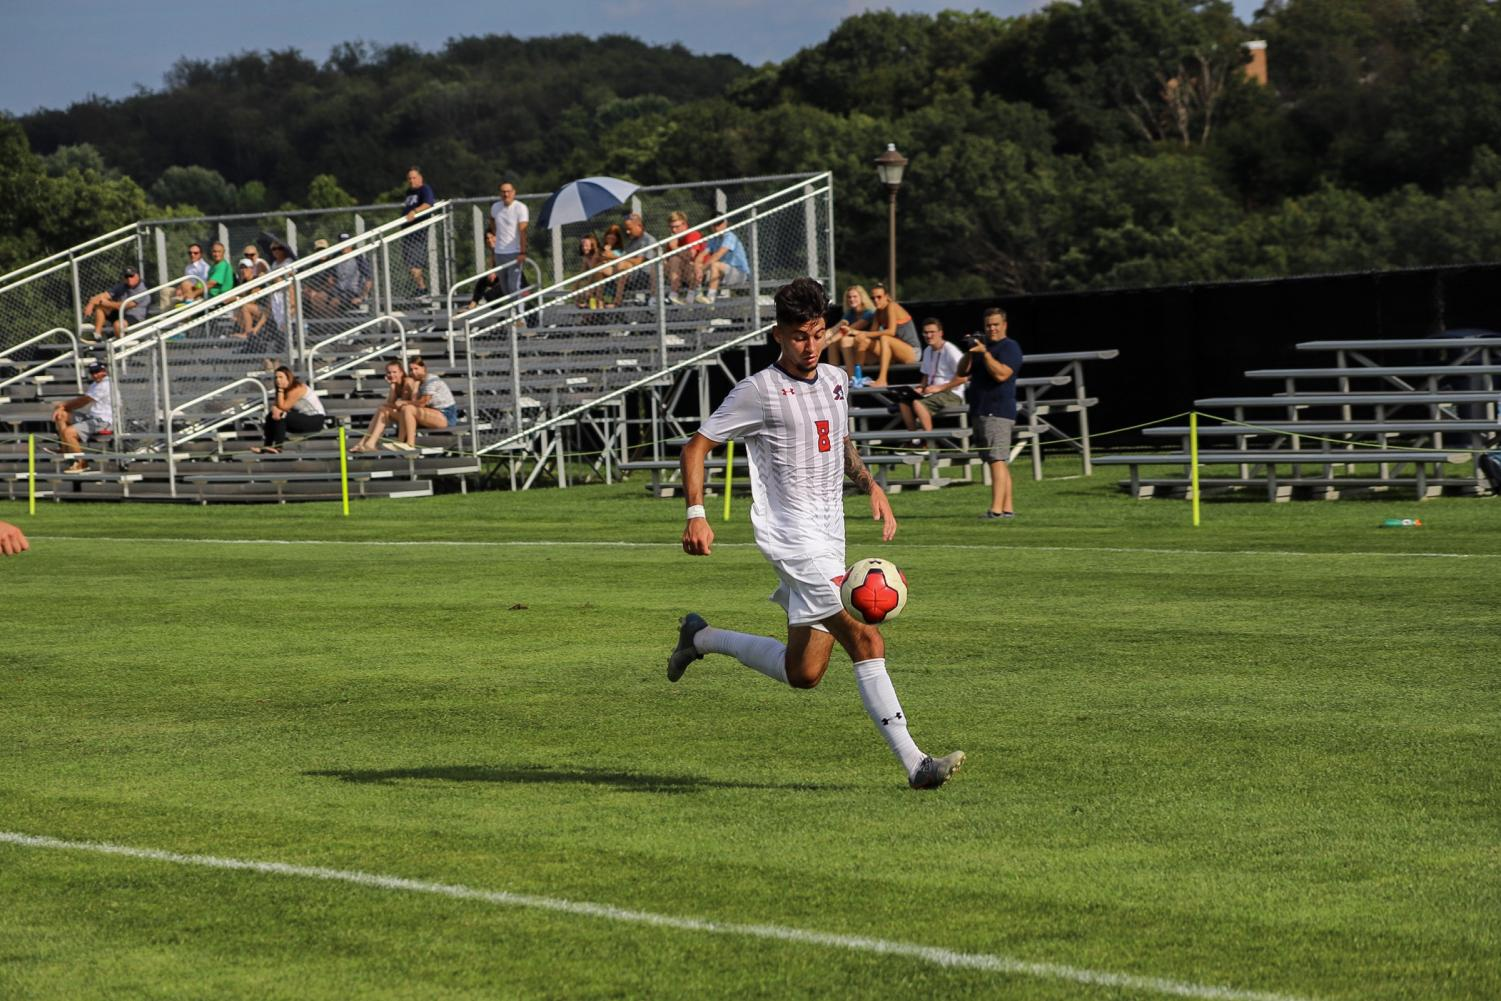 Colonials hope to turn season around as they face Howard